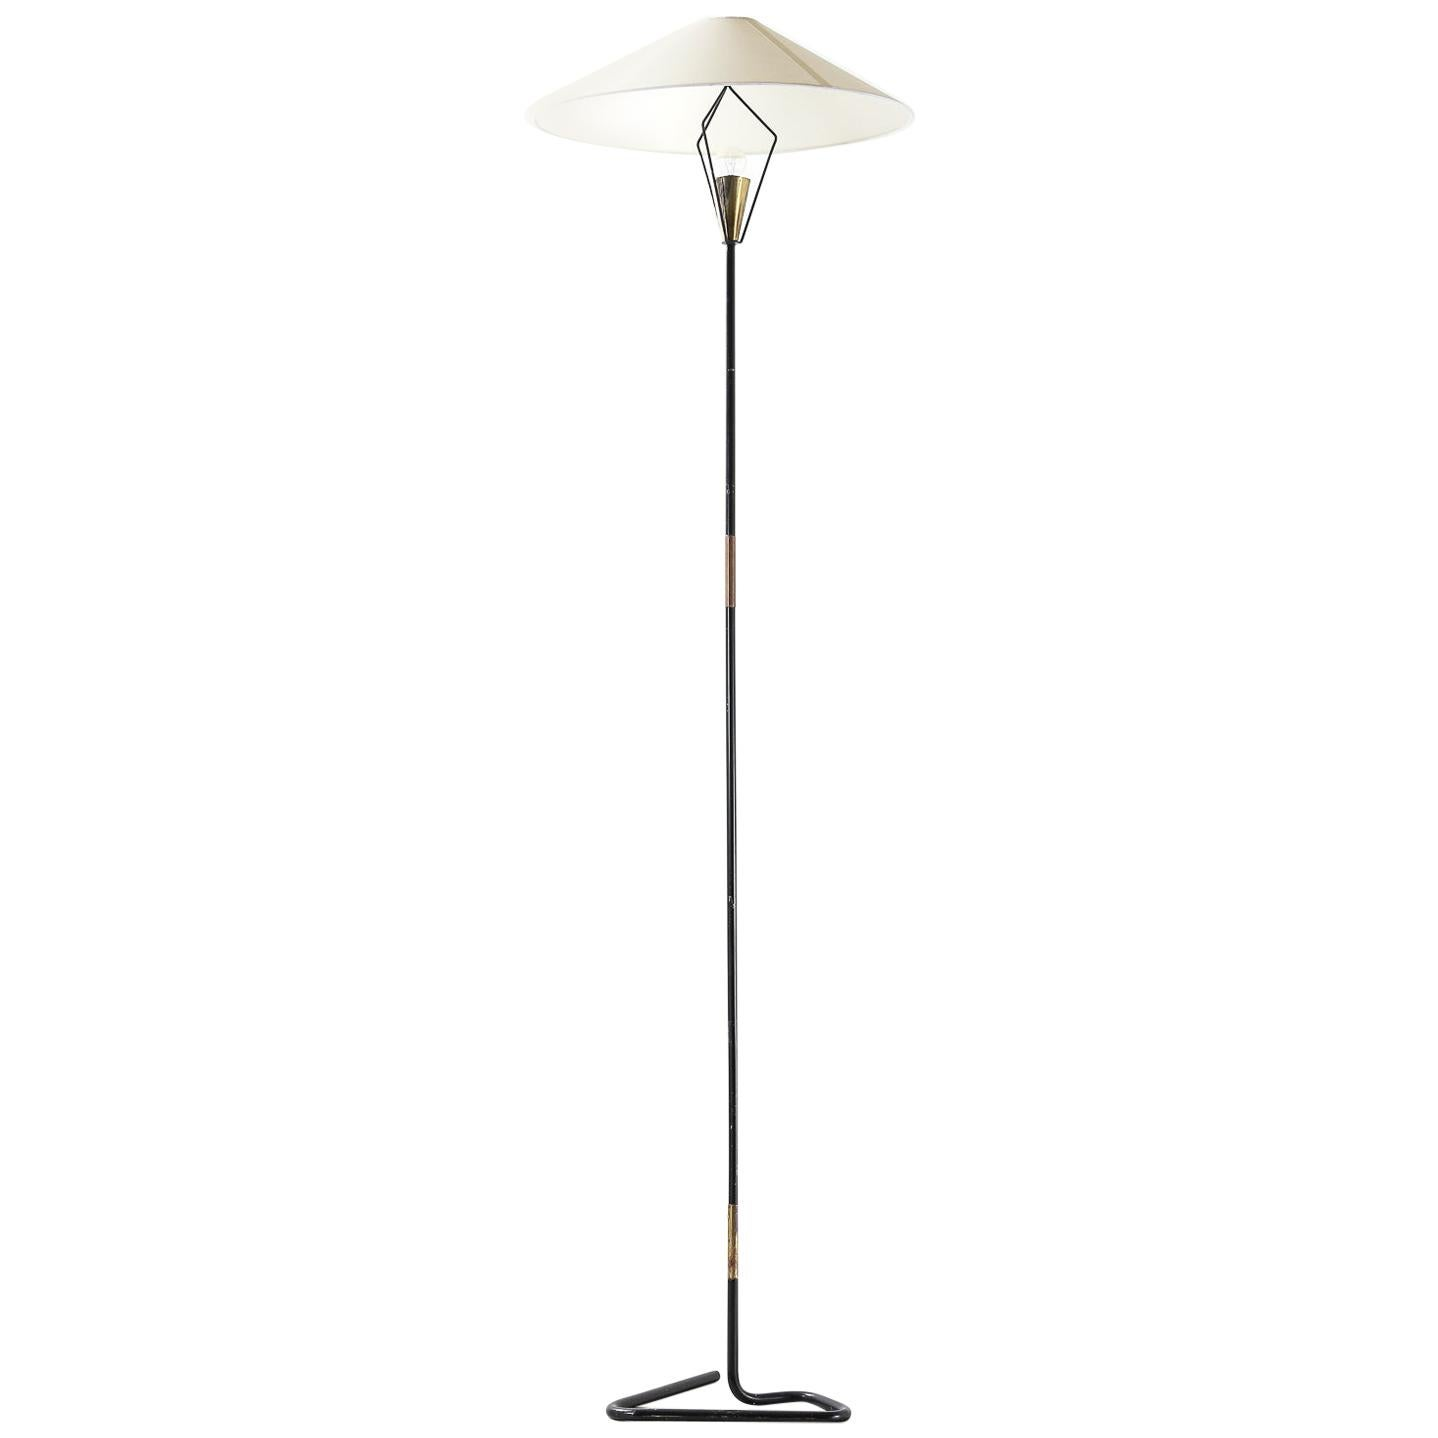 Midcentury Blackened Brass Floor Lamp with Antique Brass Finished Details